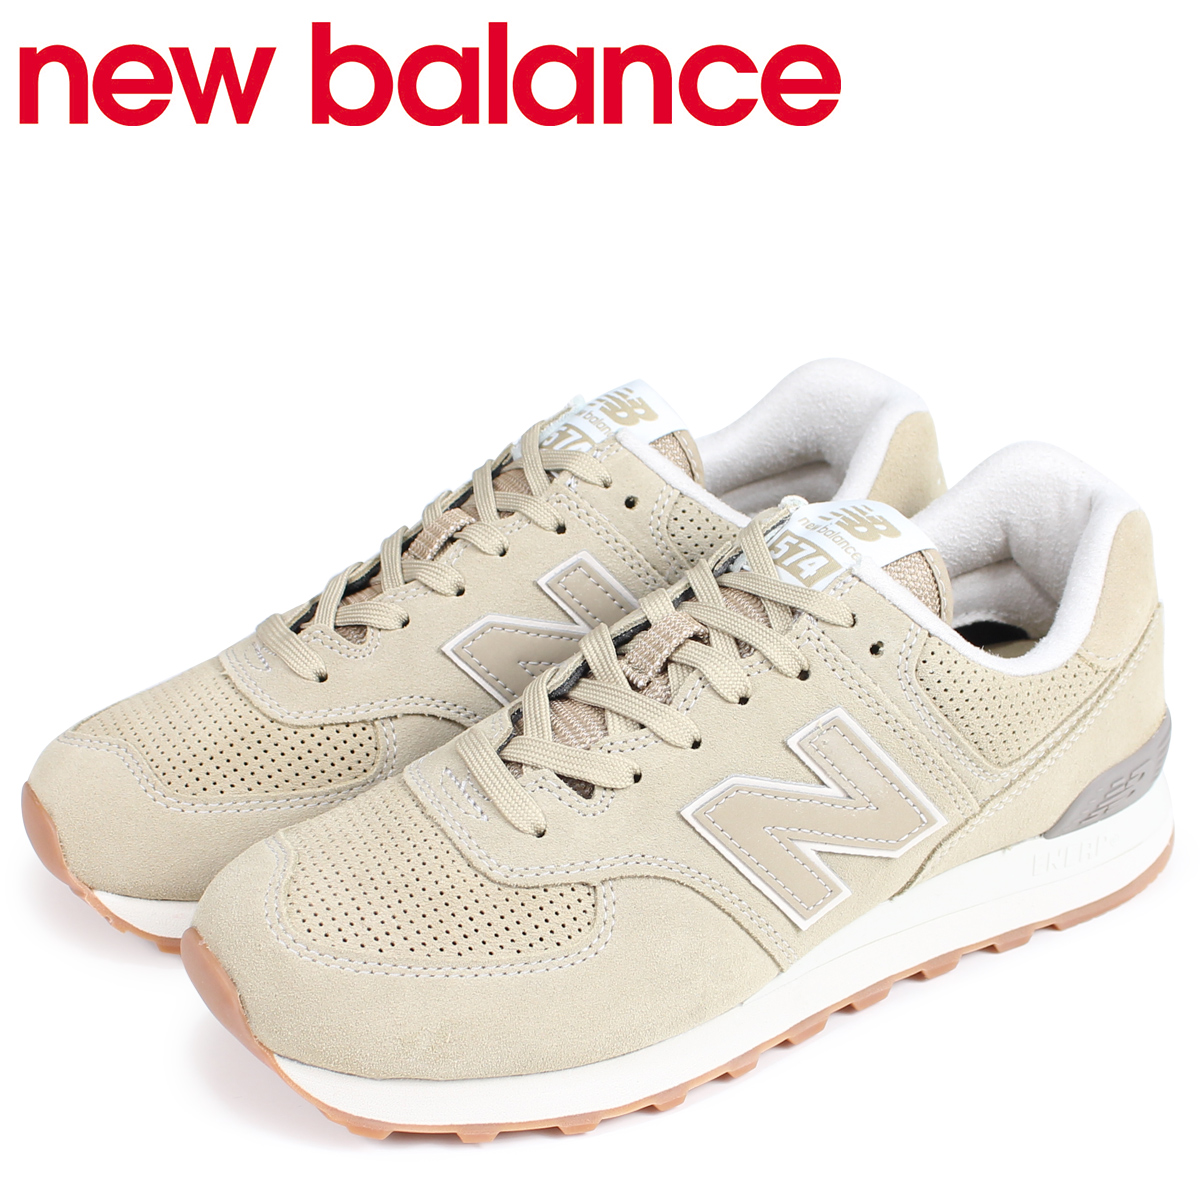 competitive price f2337 68173 new balance 574 men's New Balance sneakers ML574ESF D Wise beige